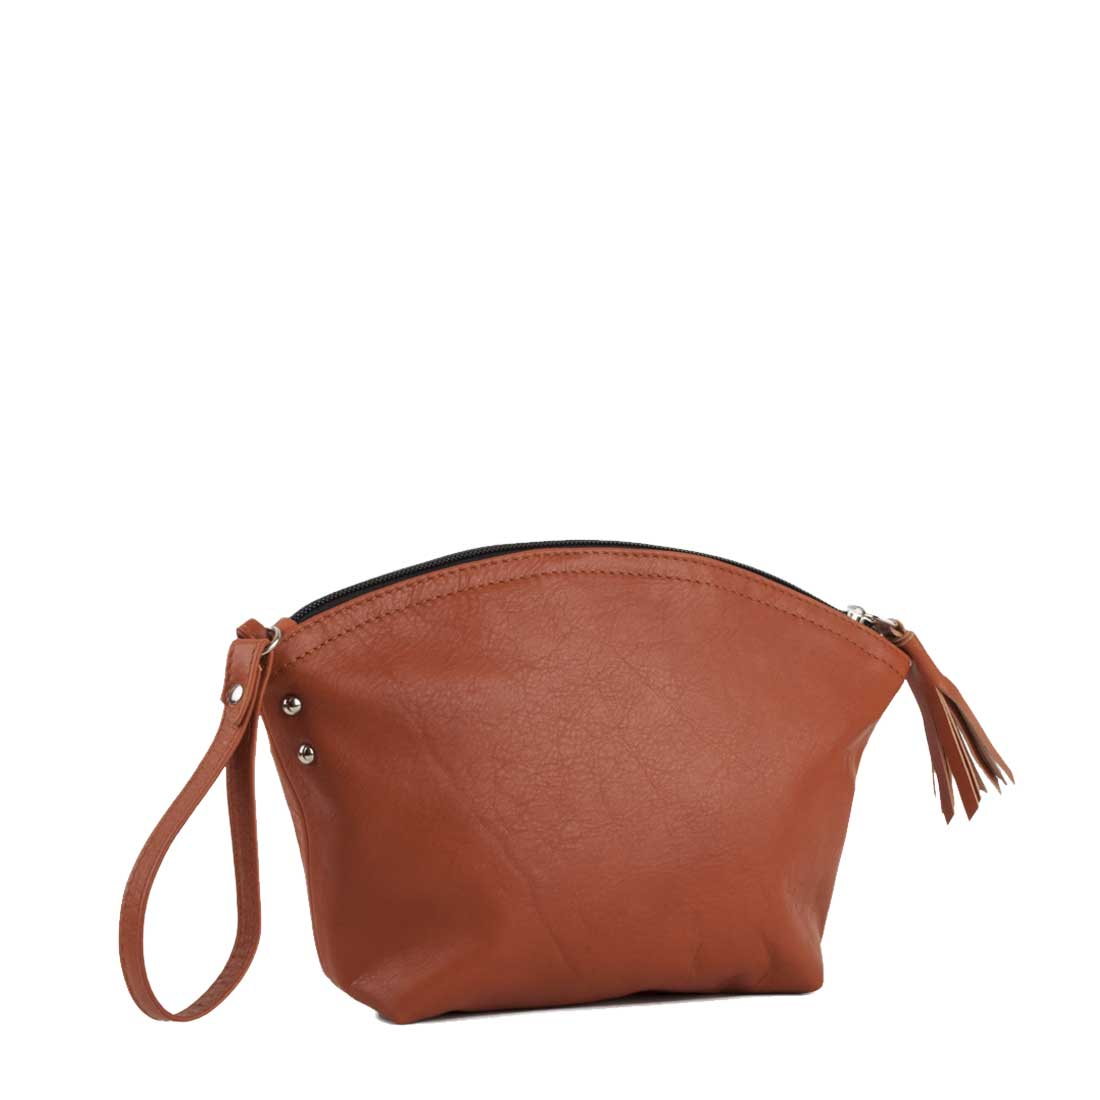 Wrist Bag In Zucca Leather